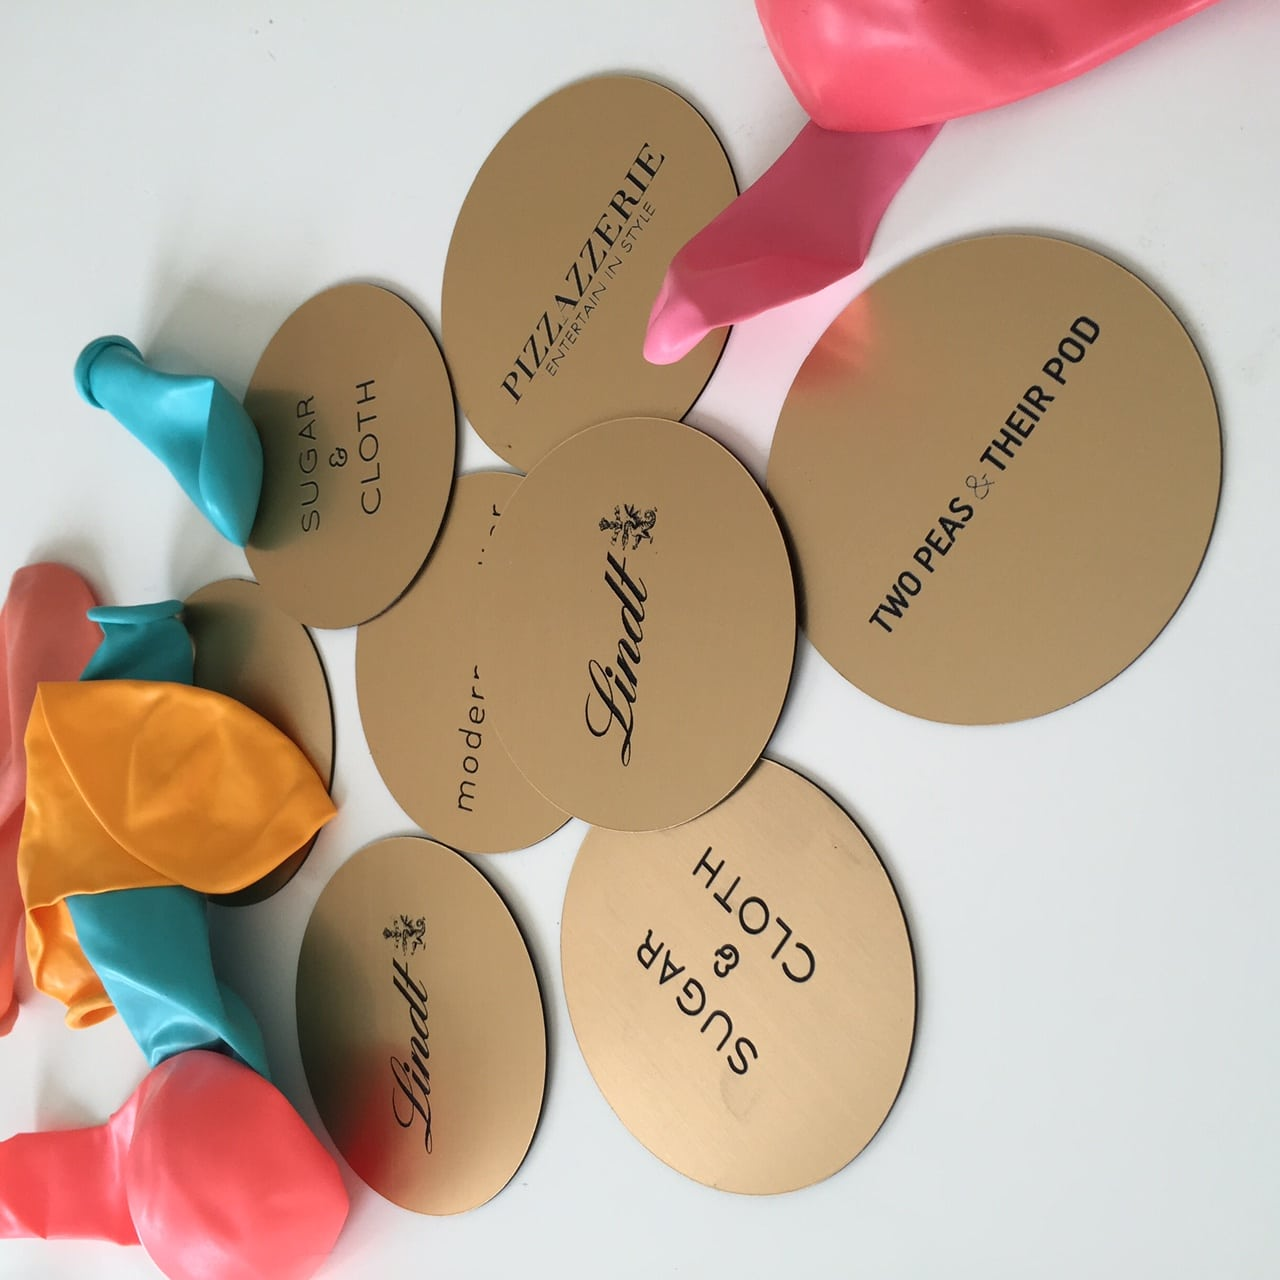 metallic gold place cards that were designed by Sugar & Cloth for Lindt chocolate - ashley rose